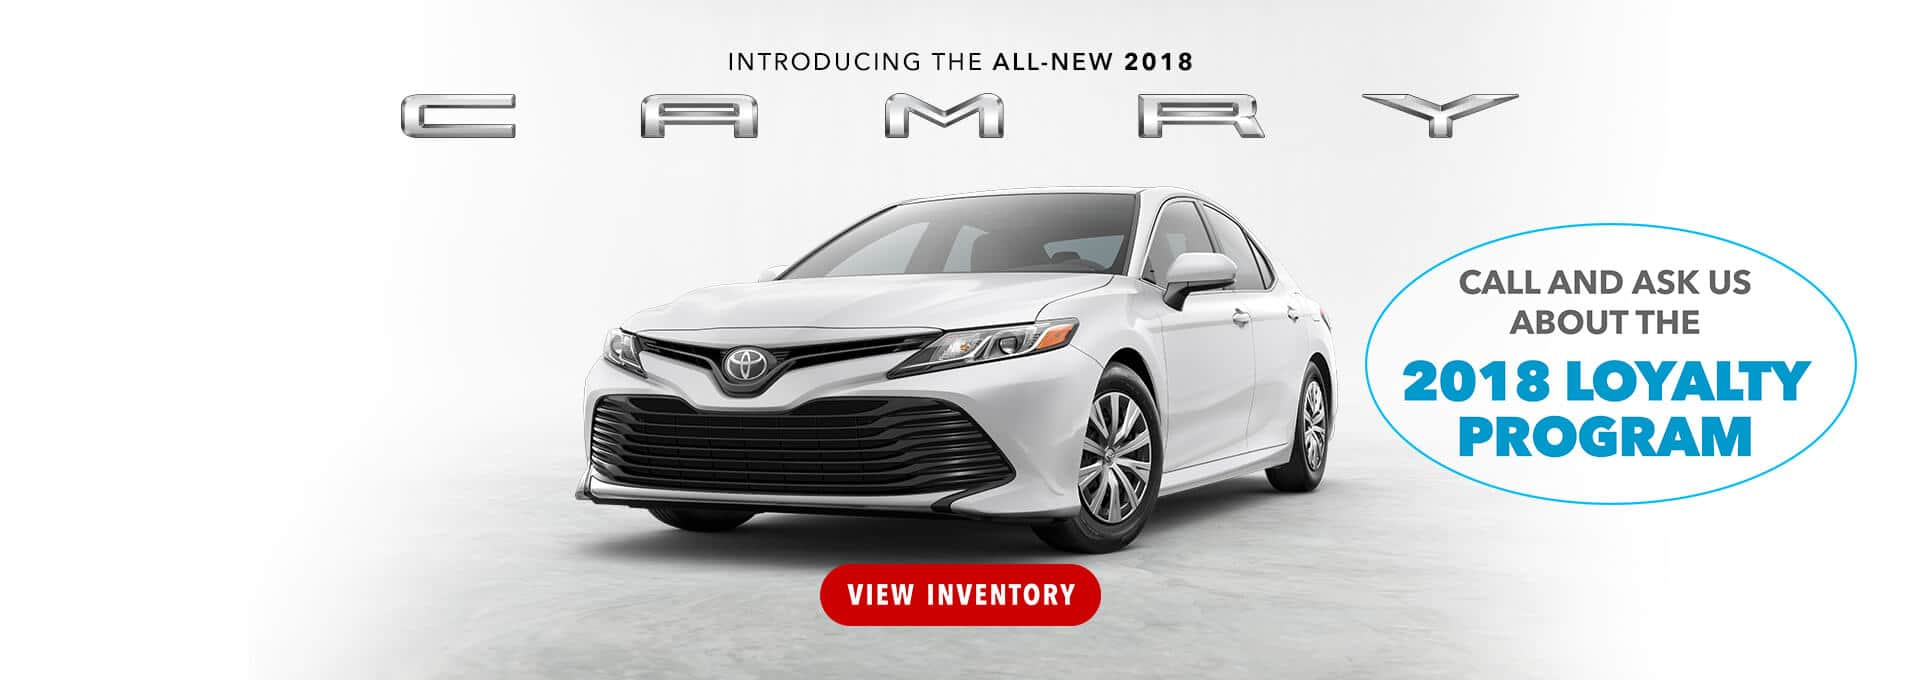 Camry 2018 Loyalty Program